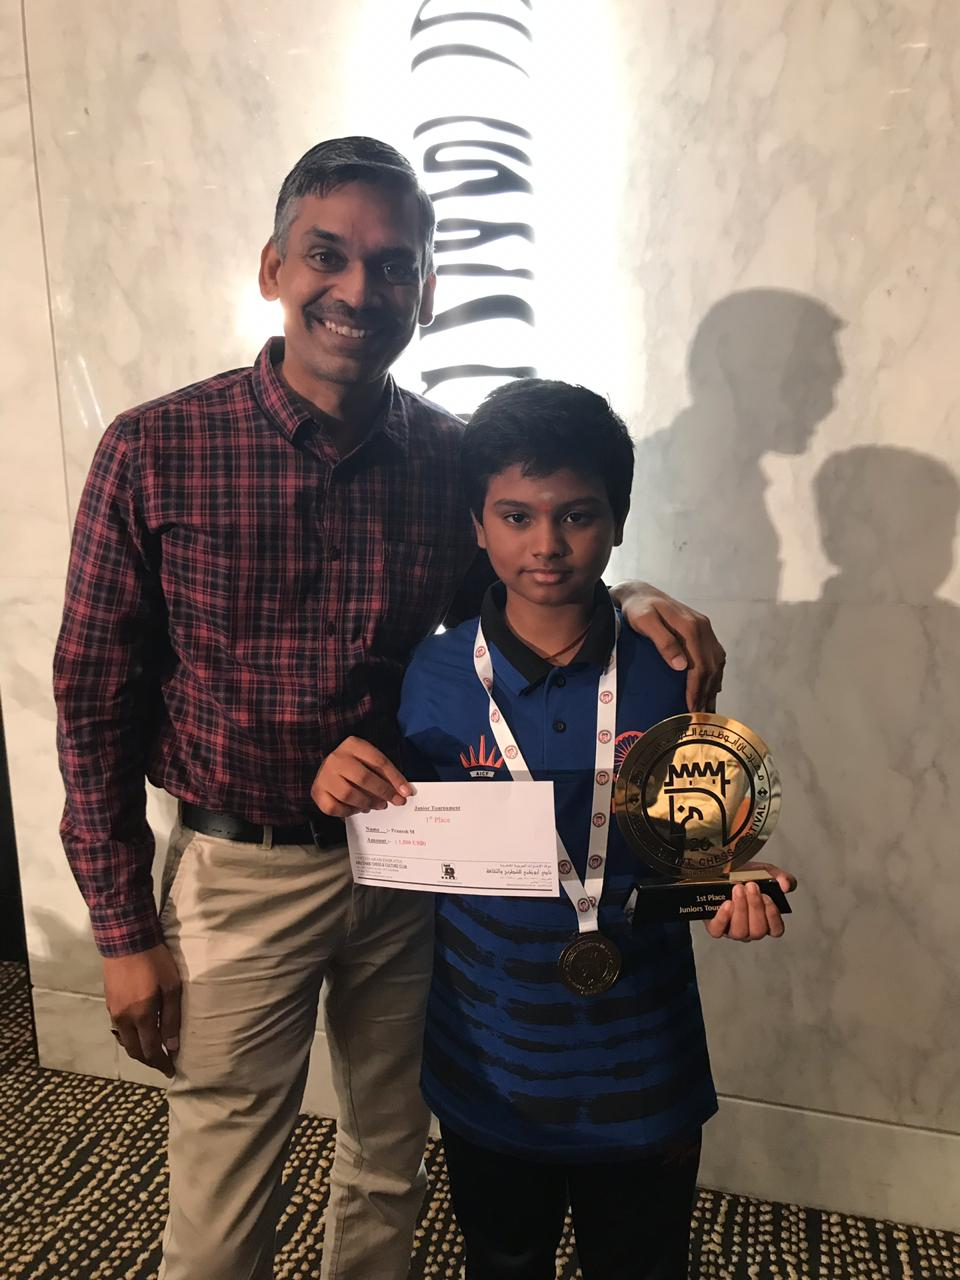 You are currently viewing Congratulations to Pranesh M for winning AbuDhabi juniors championship!